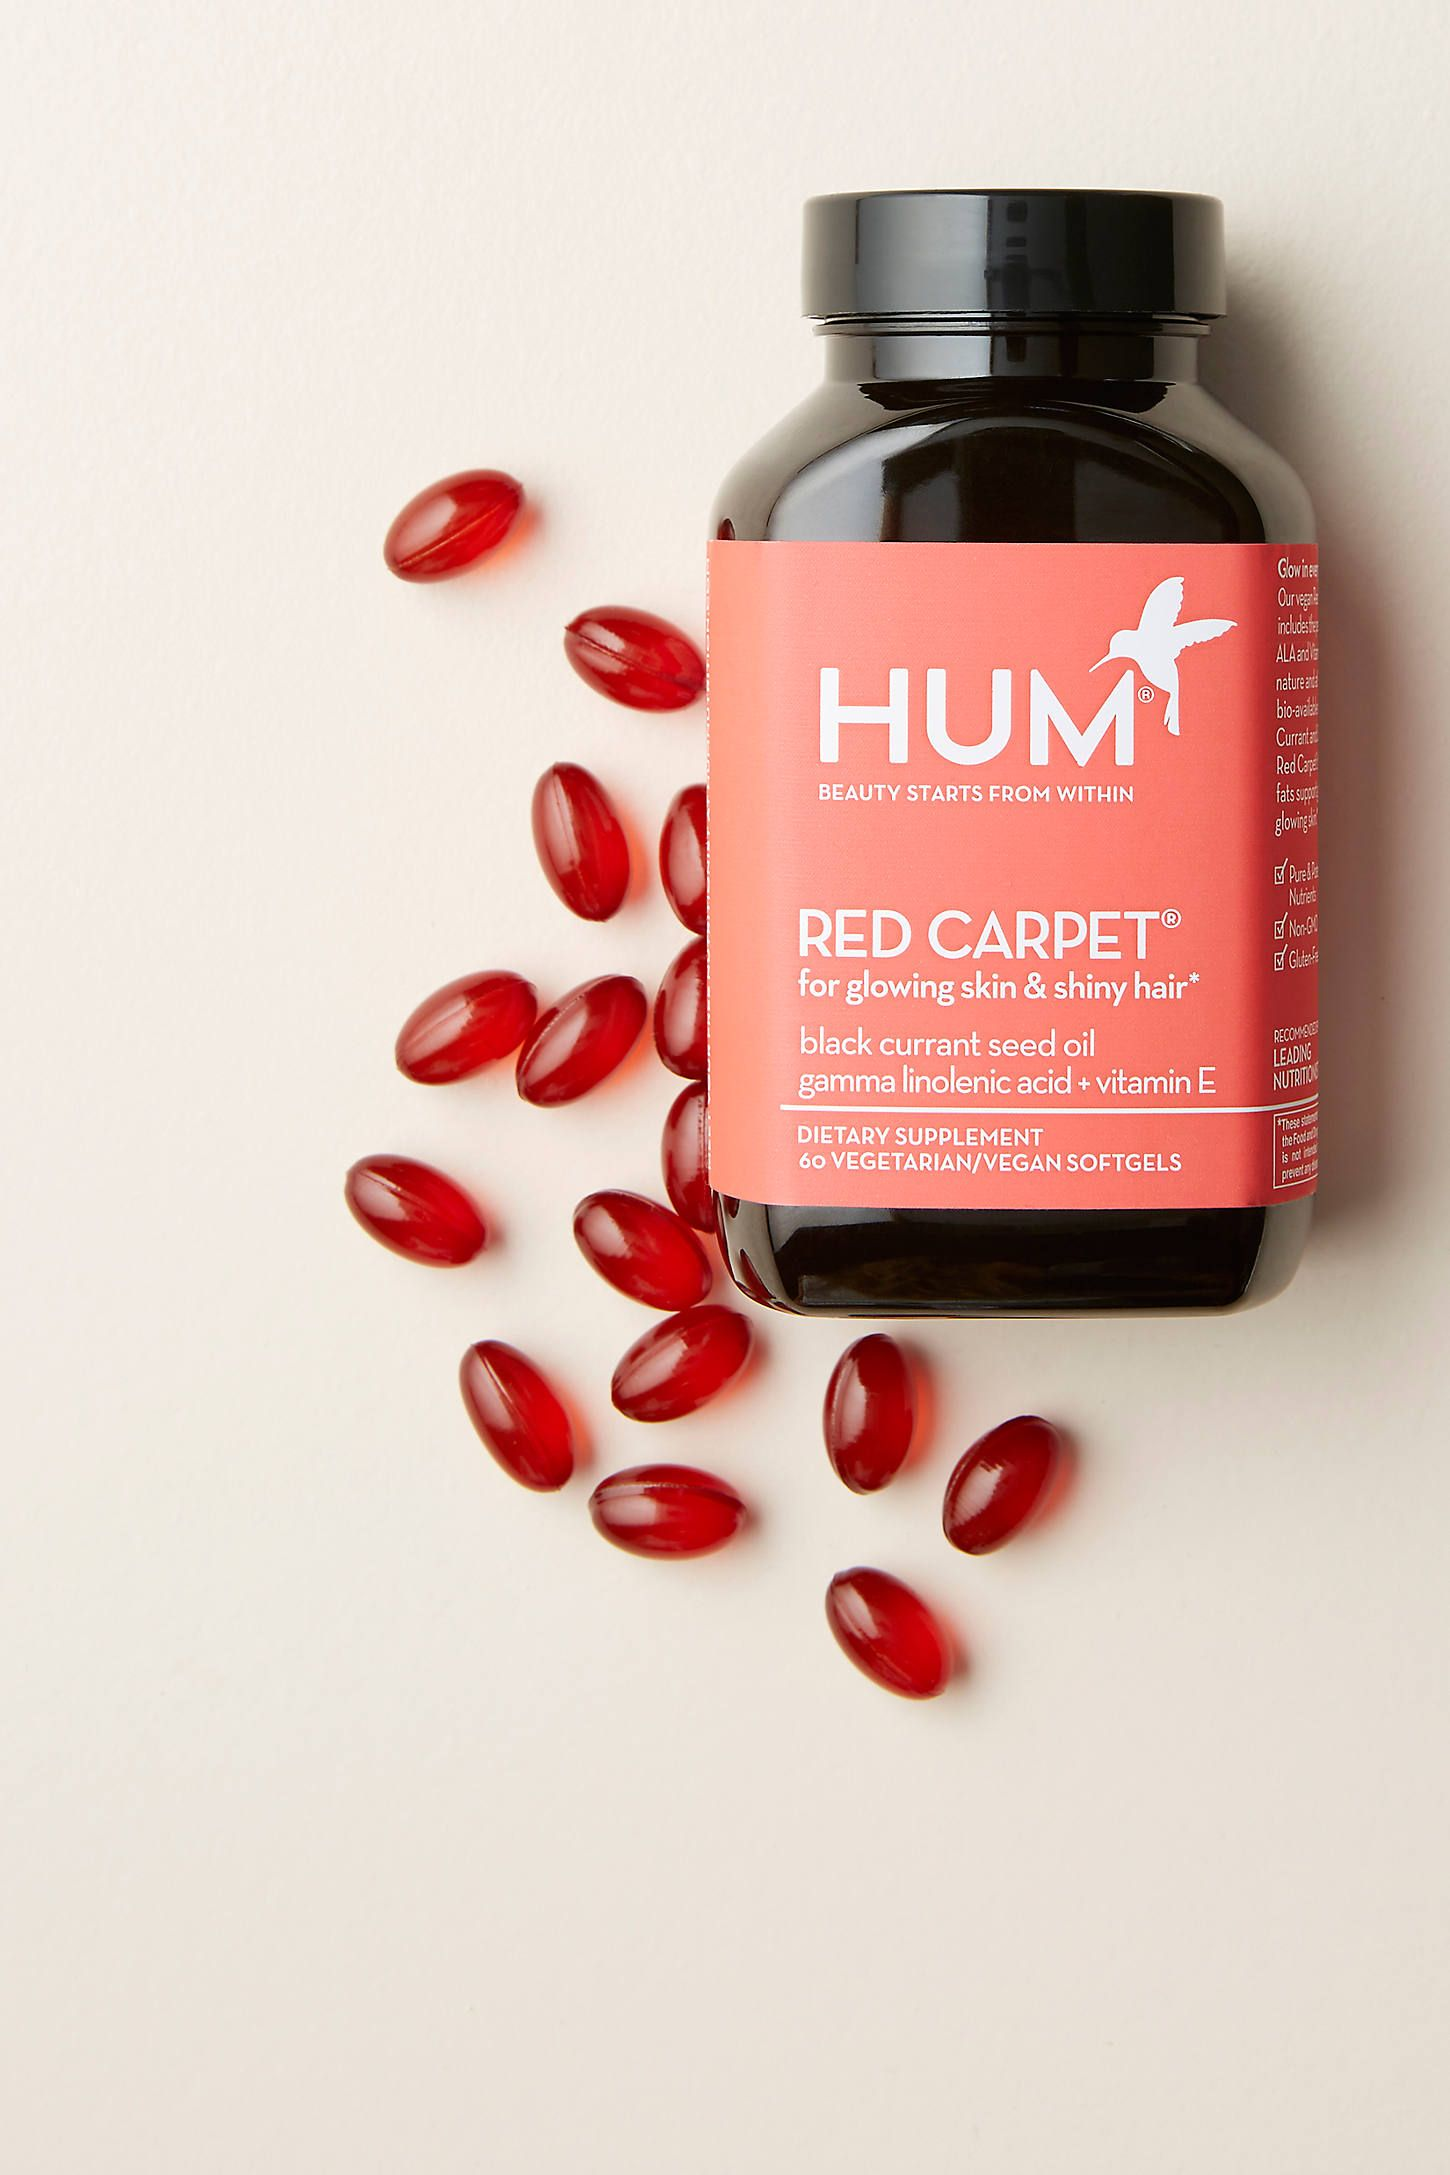 Hum Nutrition Red Carpet Supplements by HUM in Size: All, Wellness at Anthropologie